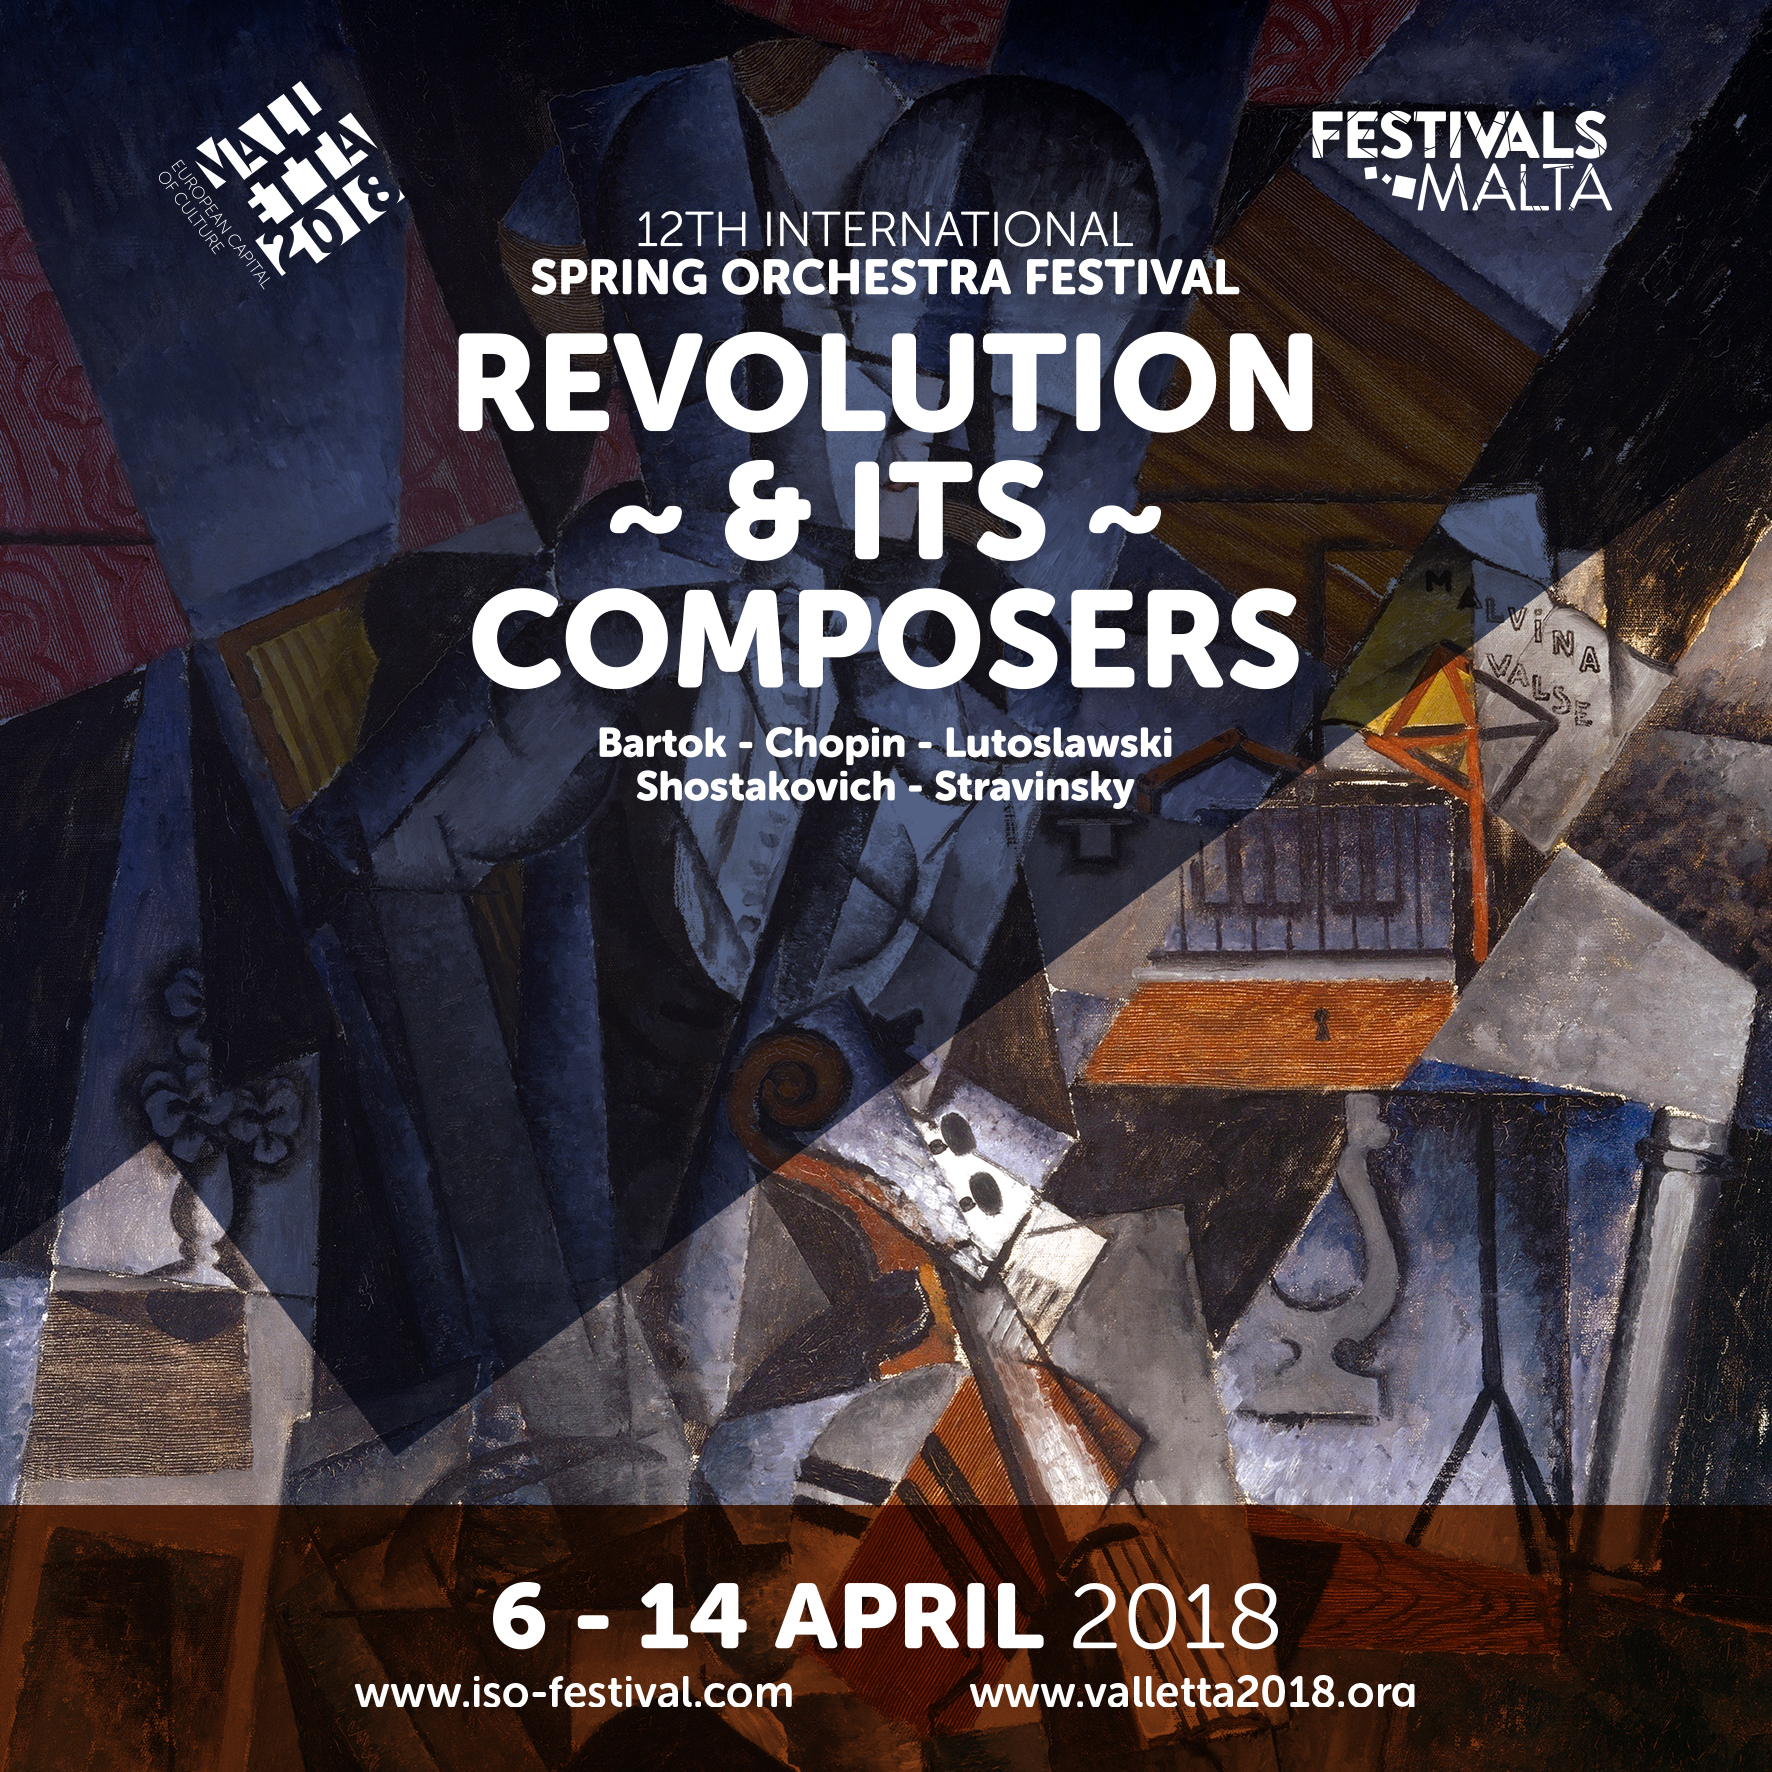 12th International Spring Orchestra Festival